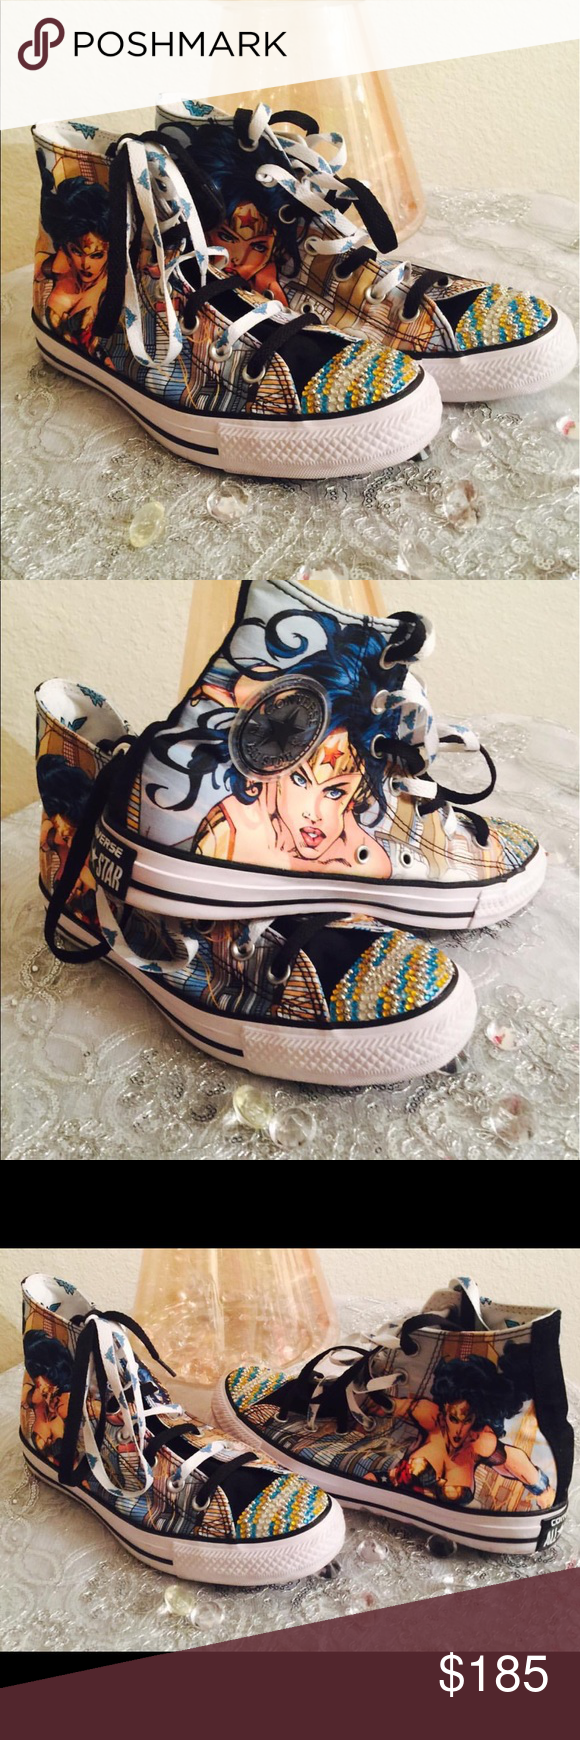 2fdc9790a1ca Custom Wonder Woman Converse (Made to Order) Obsessed with Wonder Woman  like I am  Rock the soles to prove it! I ll make these to Order for you.